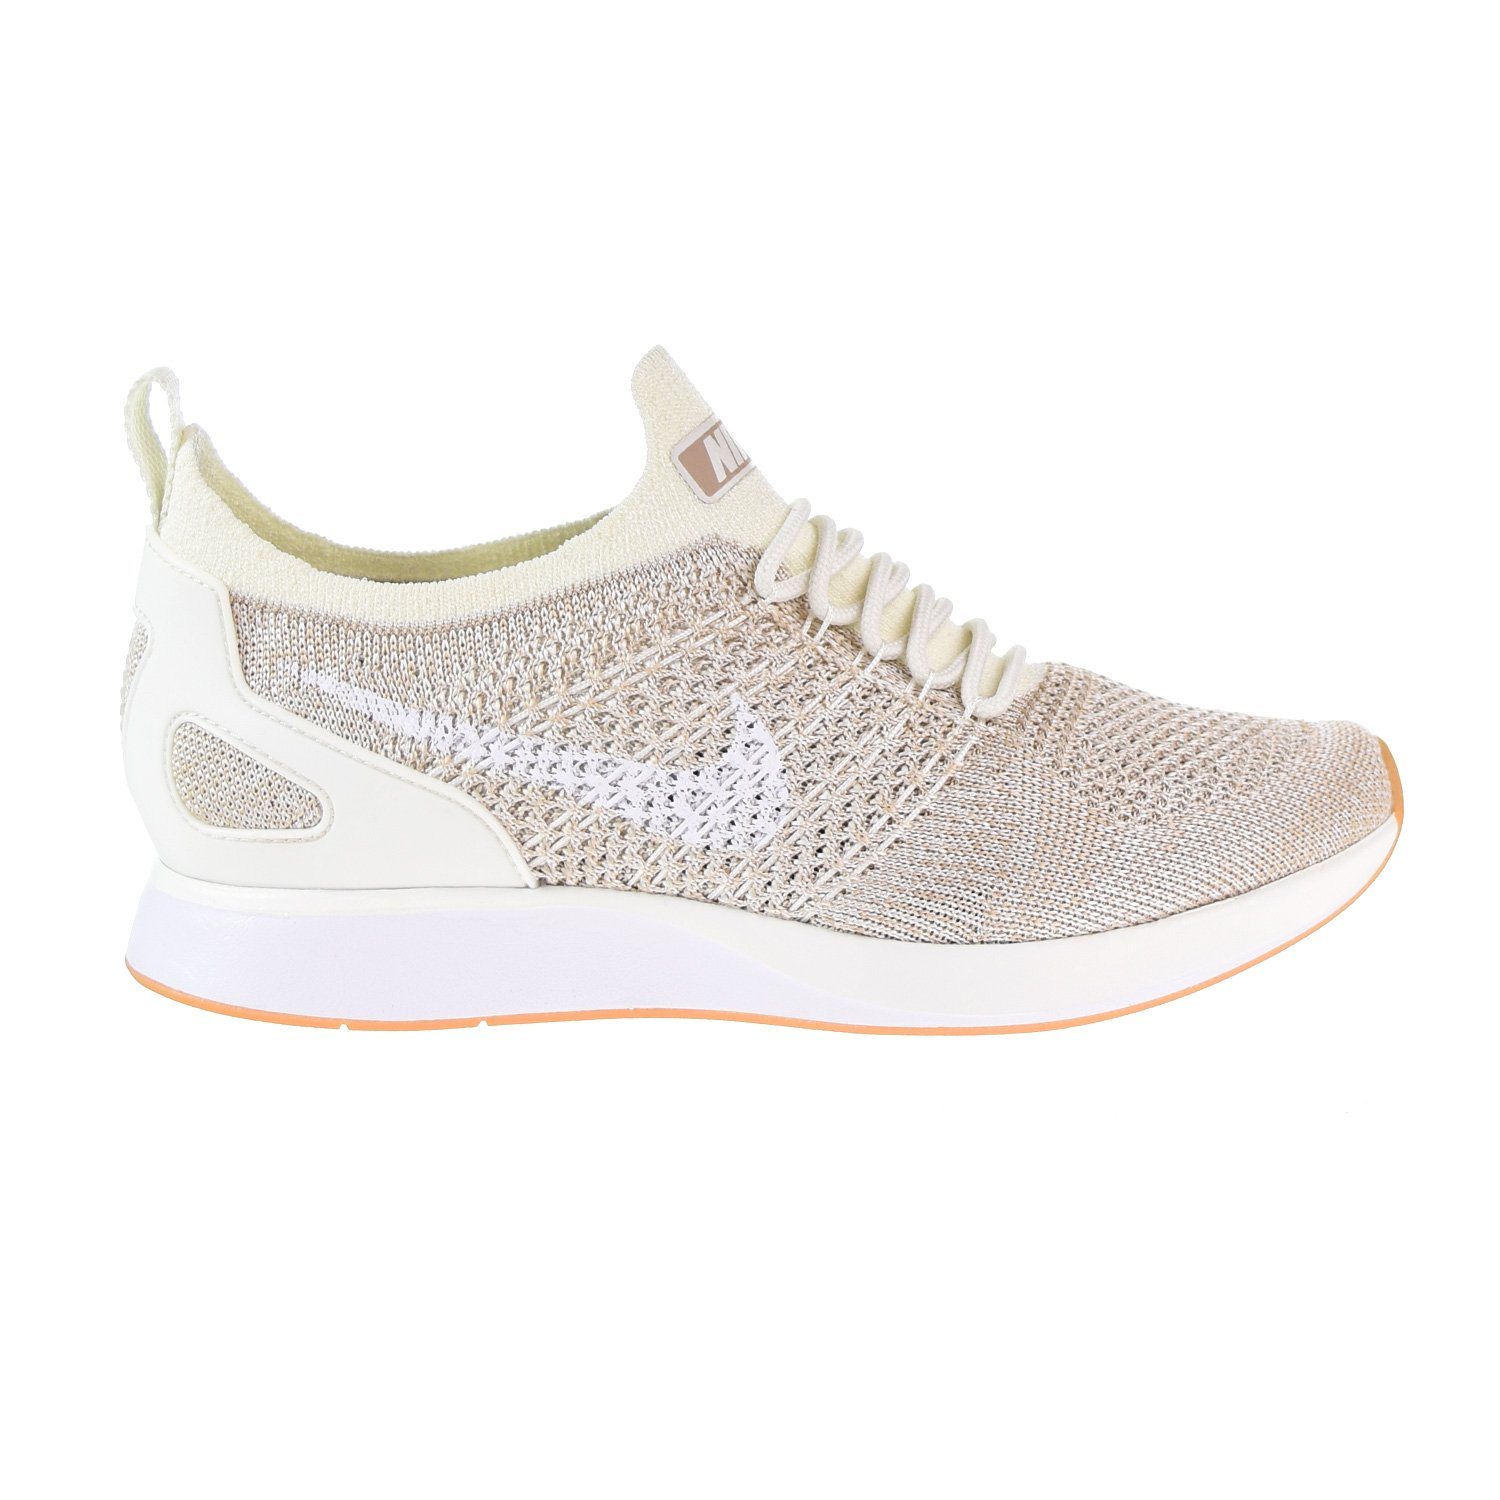 NIKE Womens Air Zoom Mariah Flyknit Racer Running Trainers Aa0521 Sneakers Shoes B079Z5TWH2 5.5 B(M) US|Sail/White/Gum